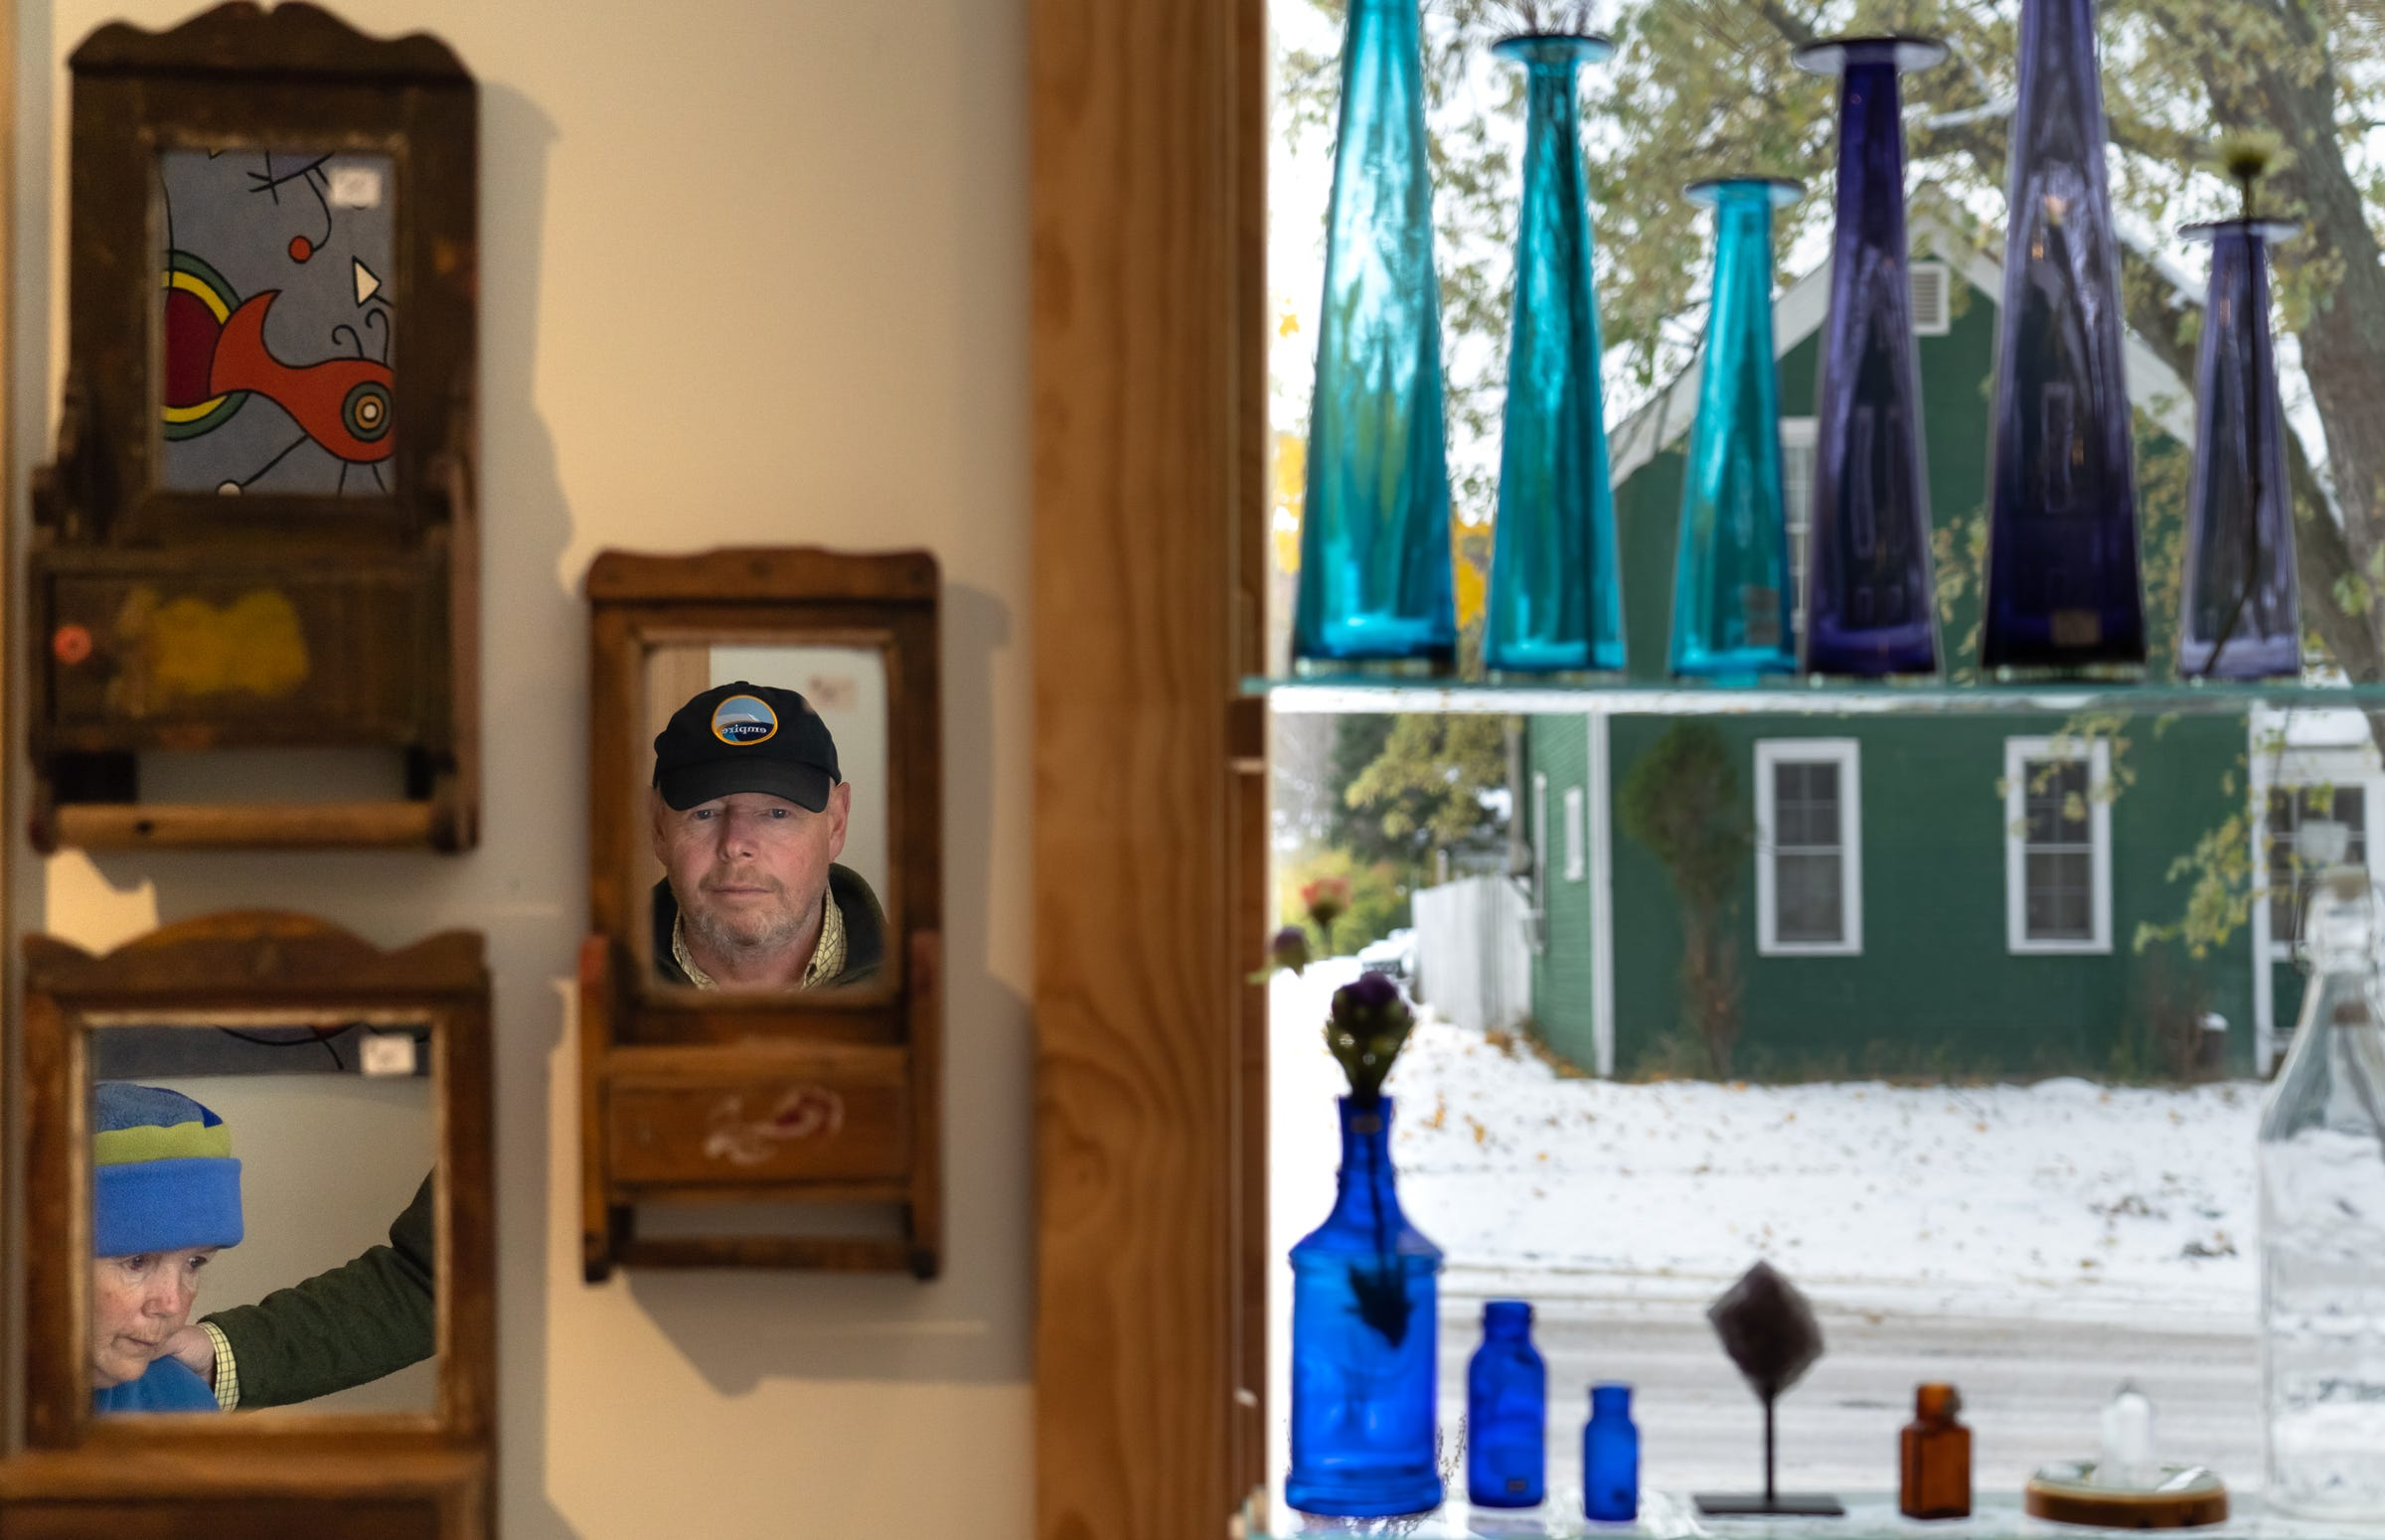 """Paul Skinner is reflected in a mirror as his wife Heidi is reflected in another on Wednesday, Nov. 8, 2019, inside the Miser's Hoard gift shop in downtown Empire. """"It's idyllic,"""" he said of life in Empire. """"If one can find a way of making a living it's very idyllic. It's unique. Like the rest of the county, there's no box stores, there's no fast-food restaurants. It's almost like Mayberry."""""""